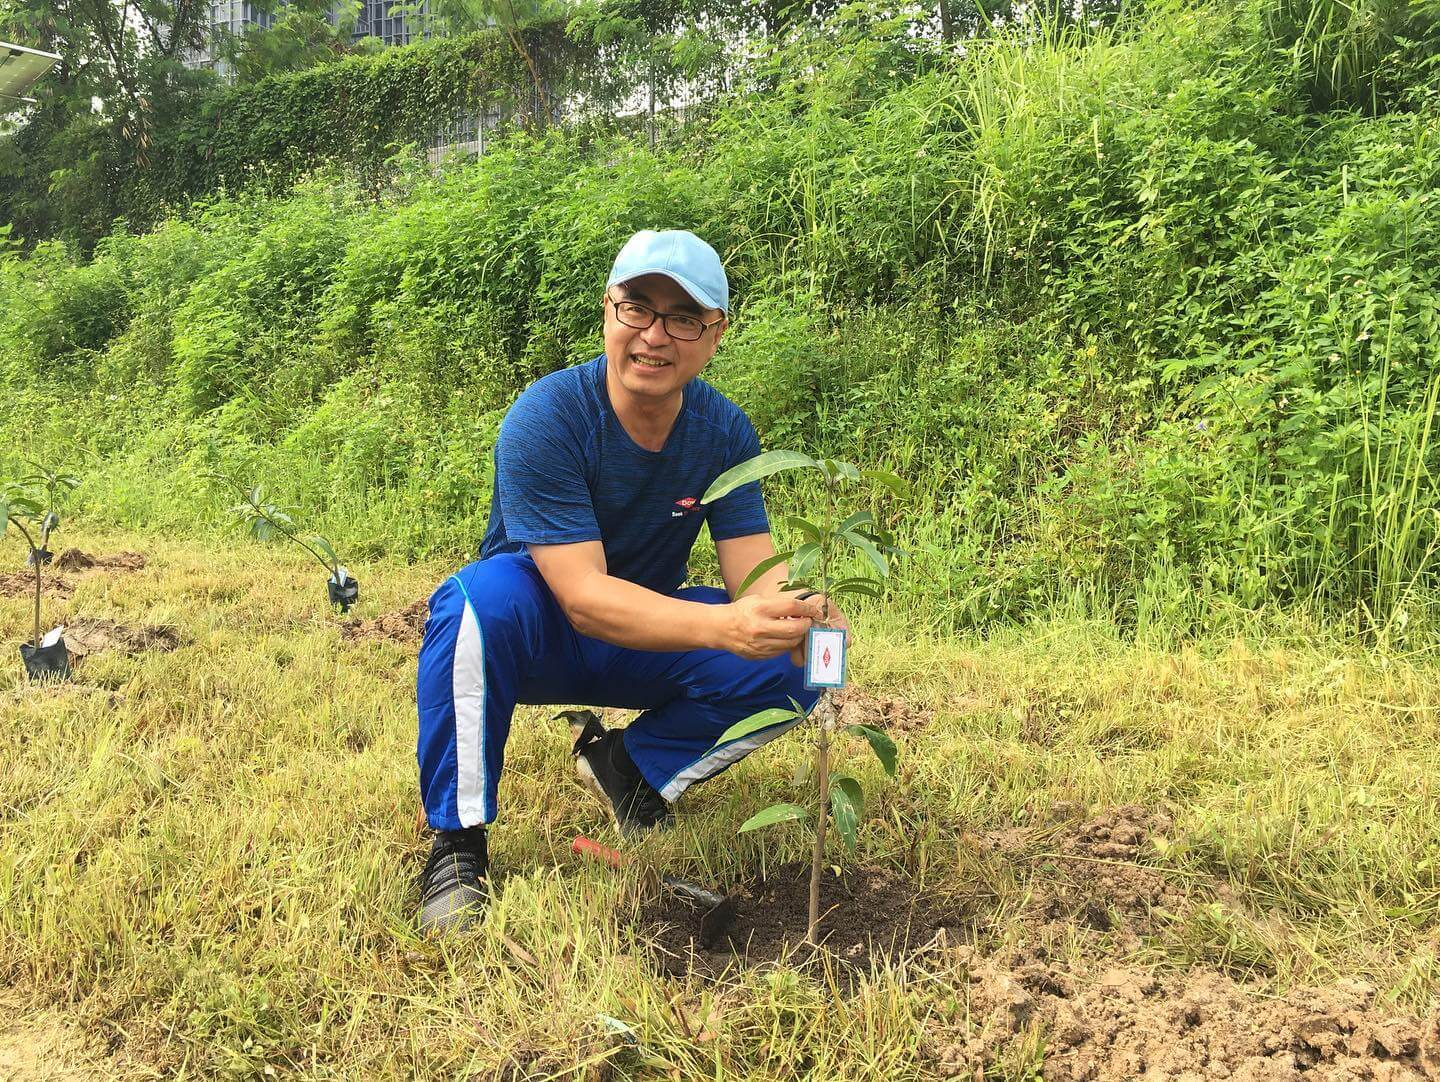 Volunteer with environment